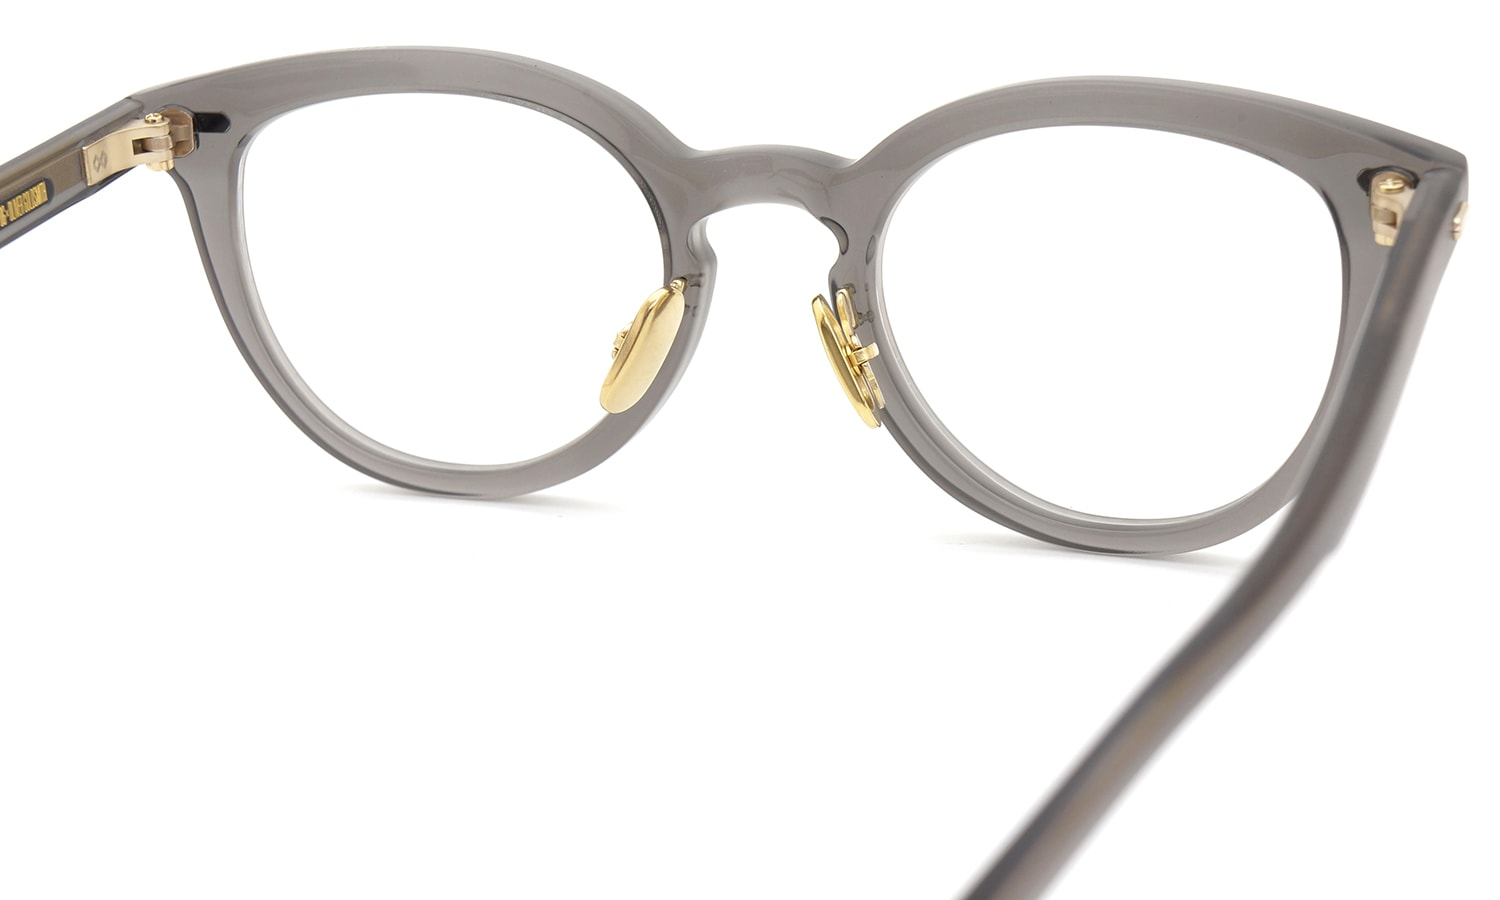 OG × OLIVER GOLDSMITH Re:PELOTA 48 リ:ペロタ 7